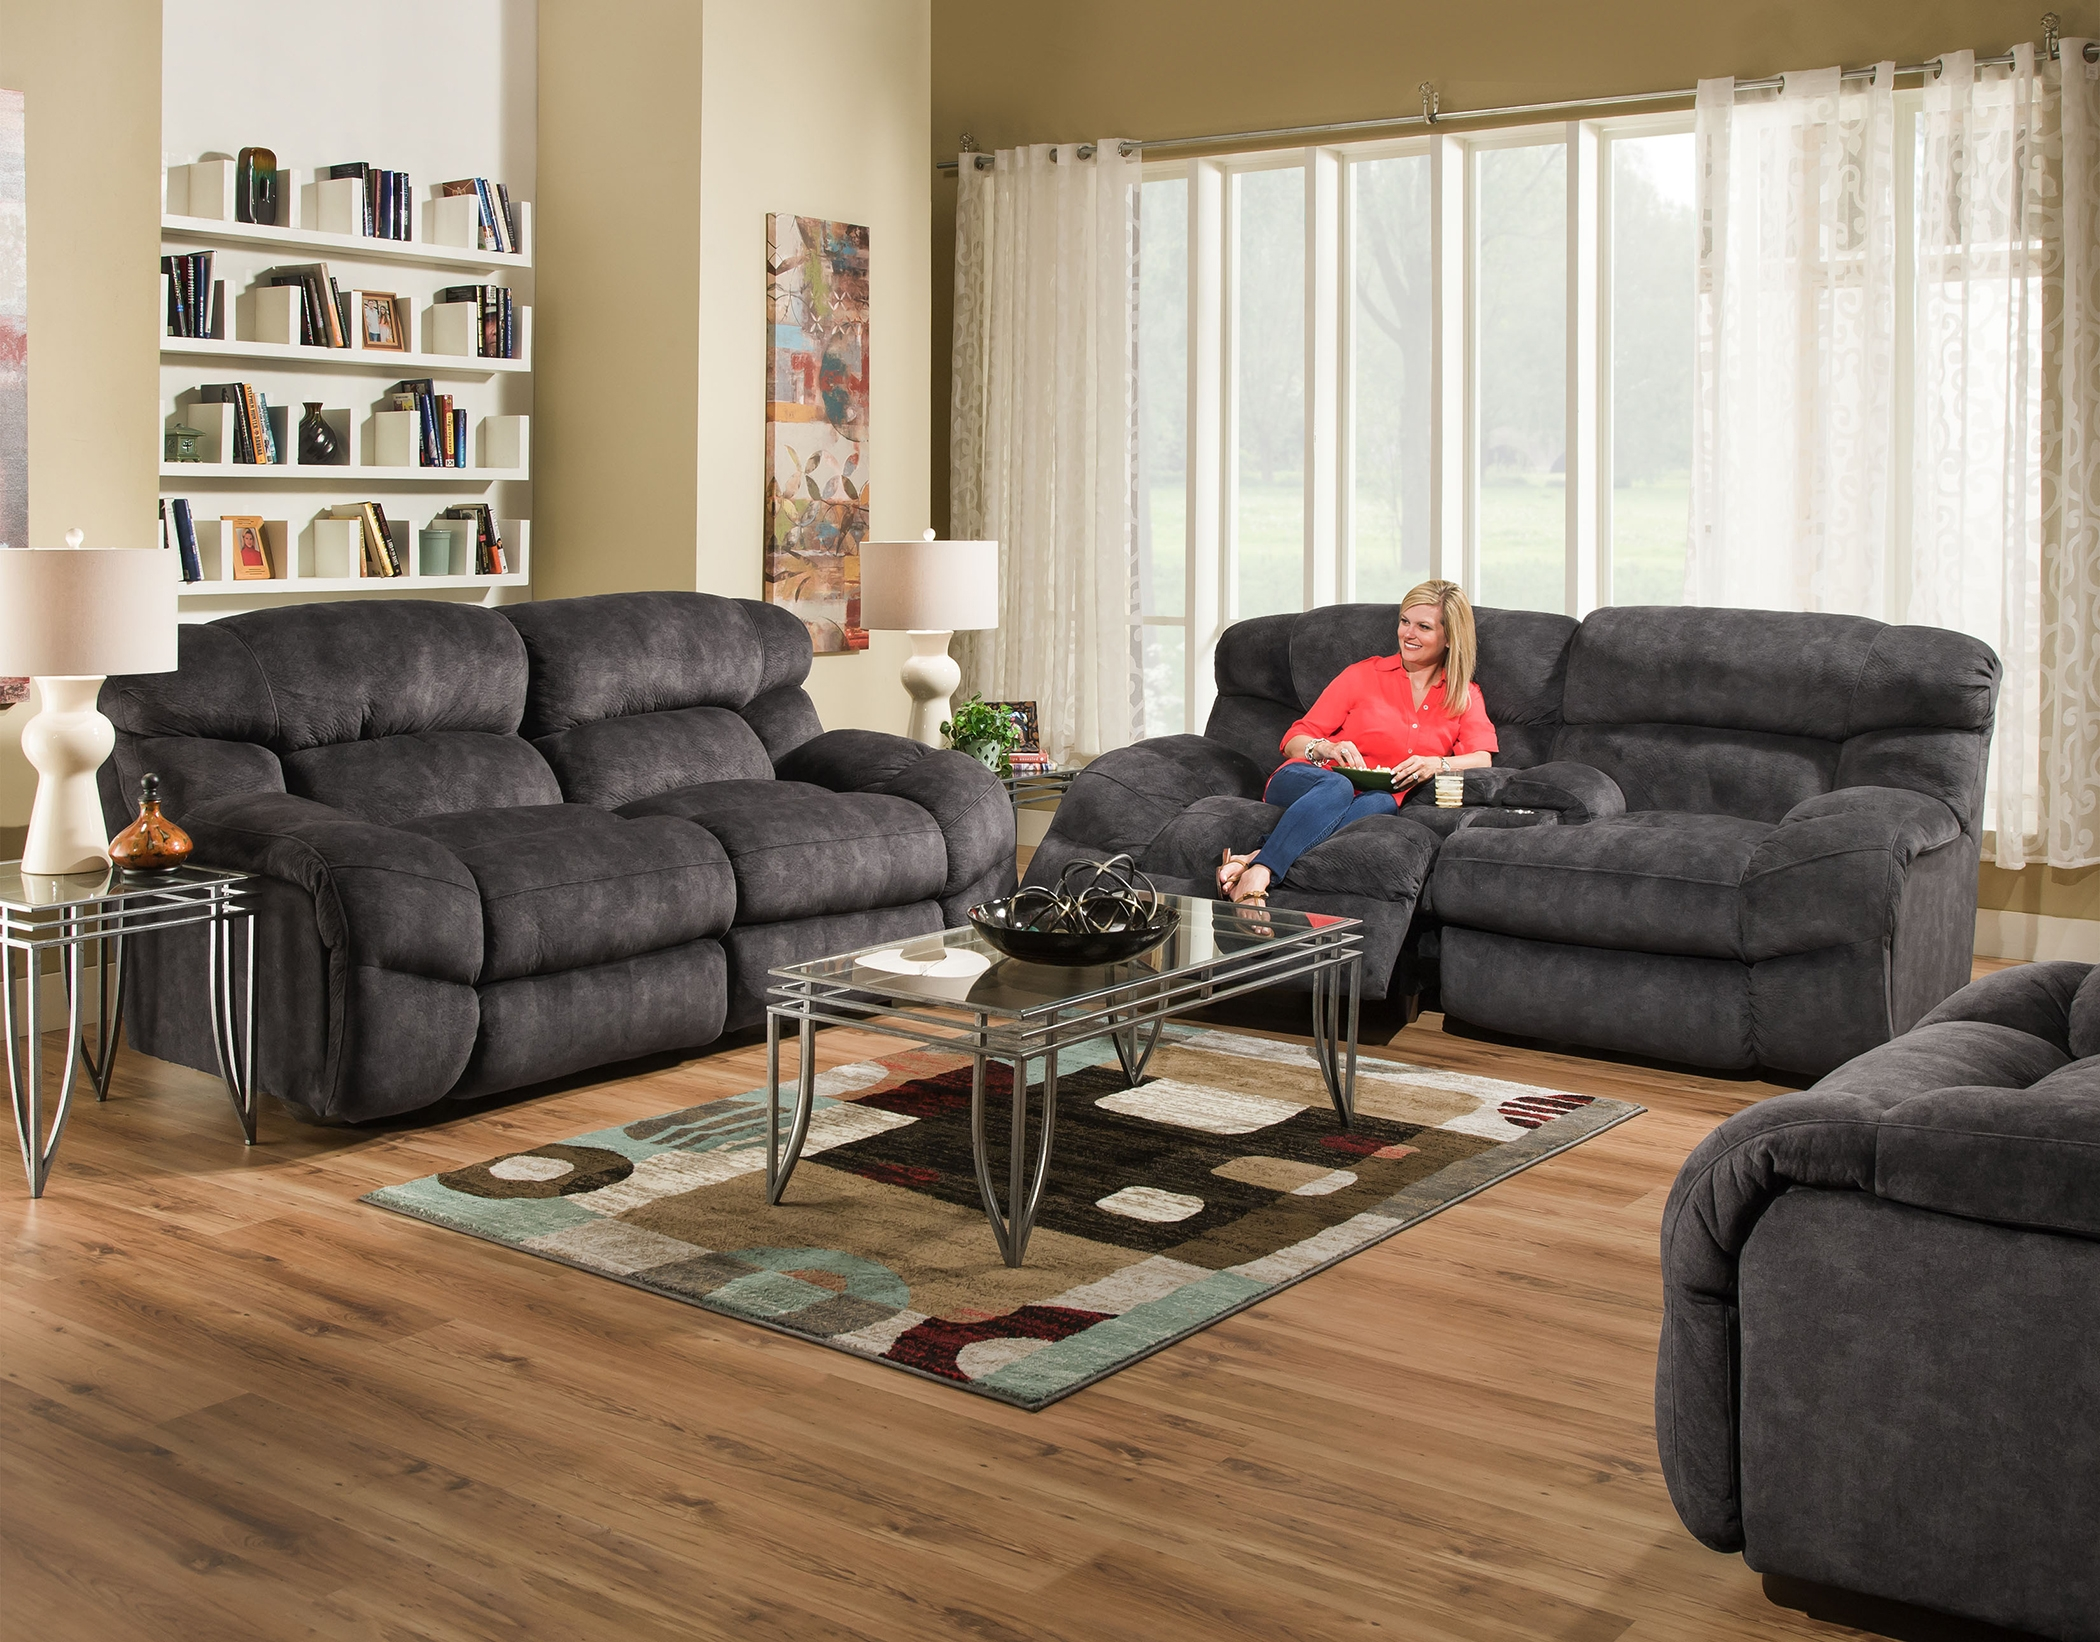 Sensational Charcoal Cloud Power Reclining Sofa And Loveseat Bralicious Painted Fabric Chair Ideas Braliciousco